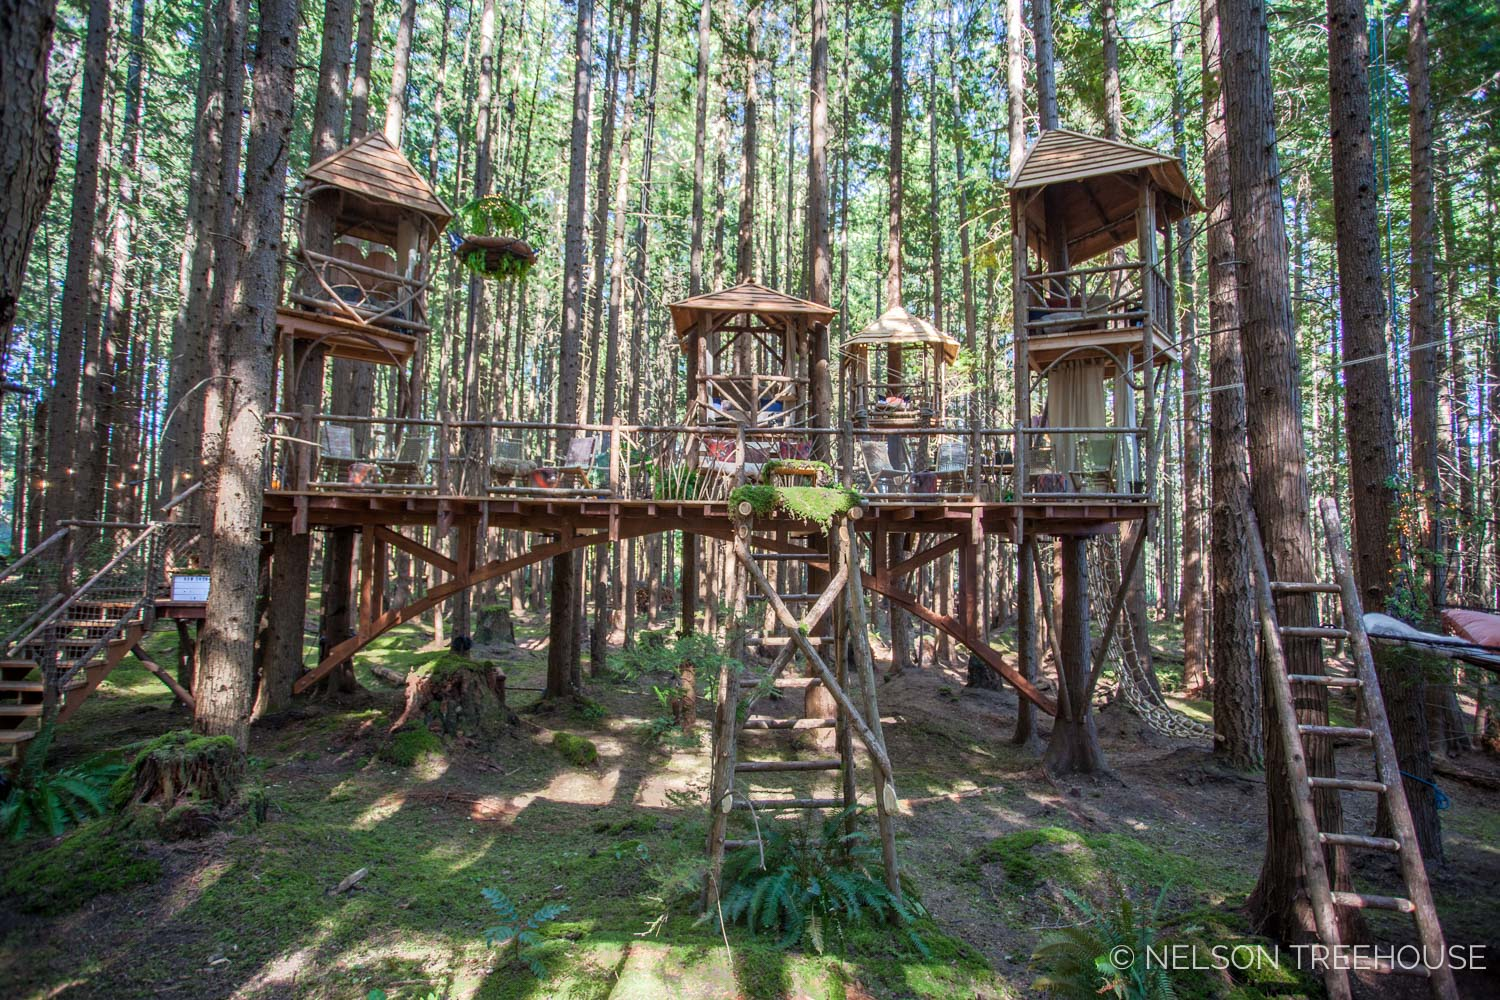 Treetop-Movie-Theater-2018-Nelson-Treehouse-445.jpg